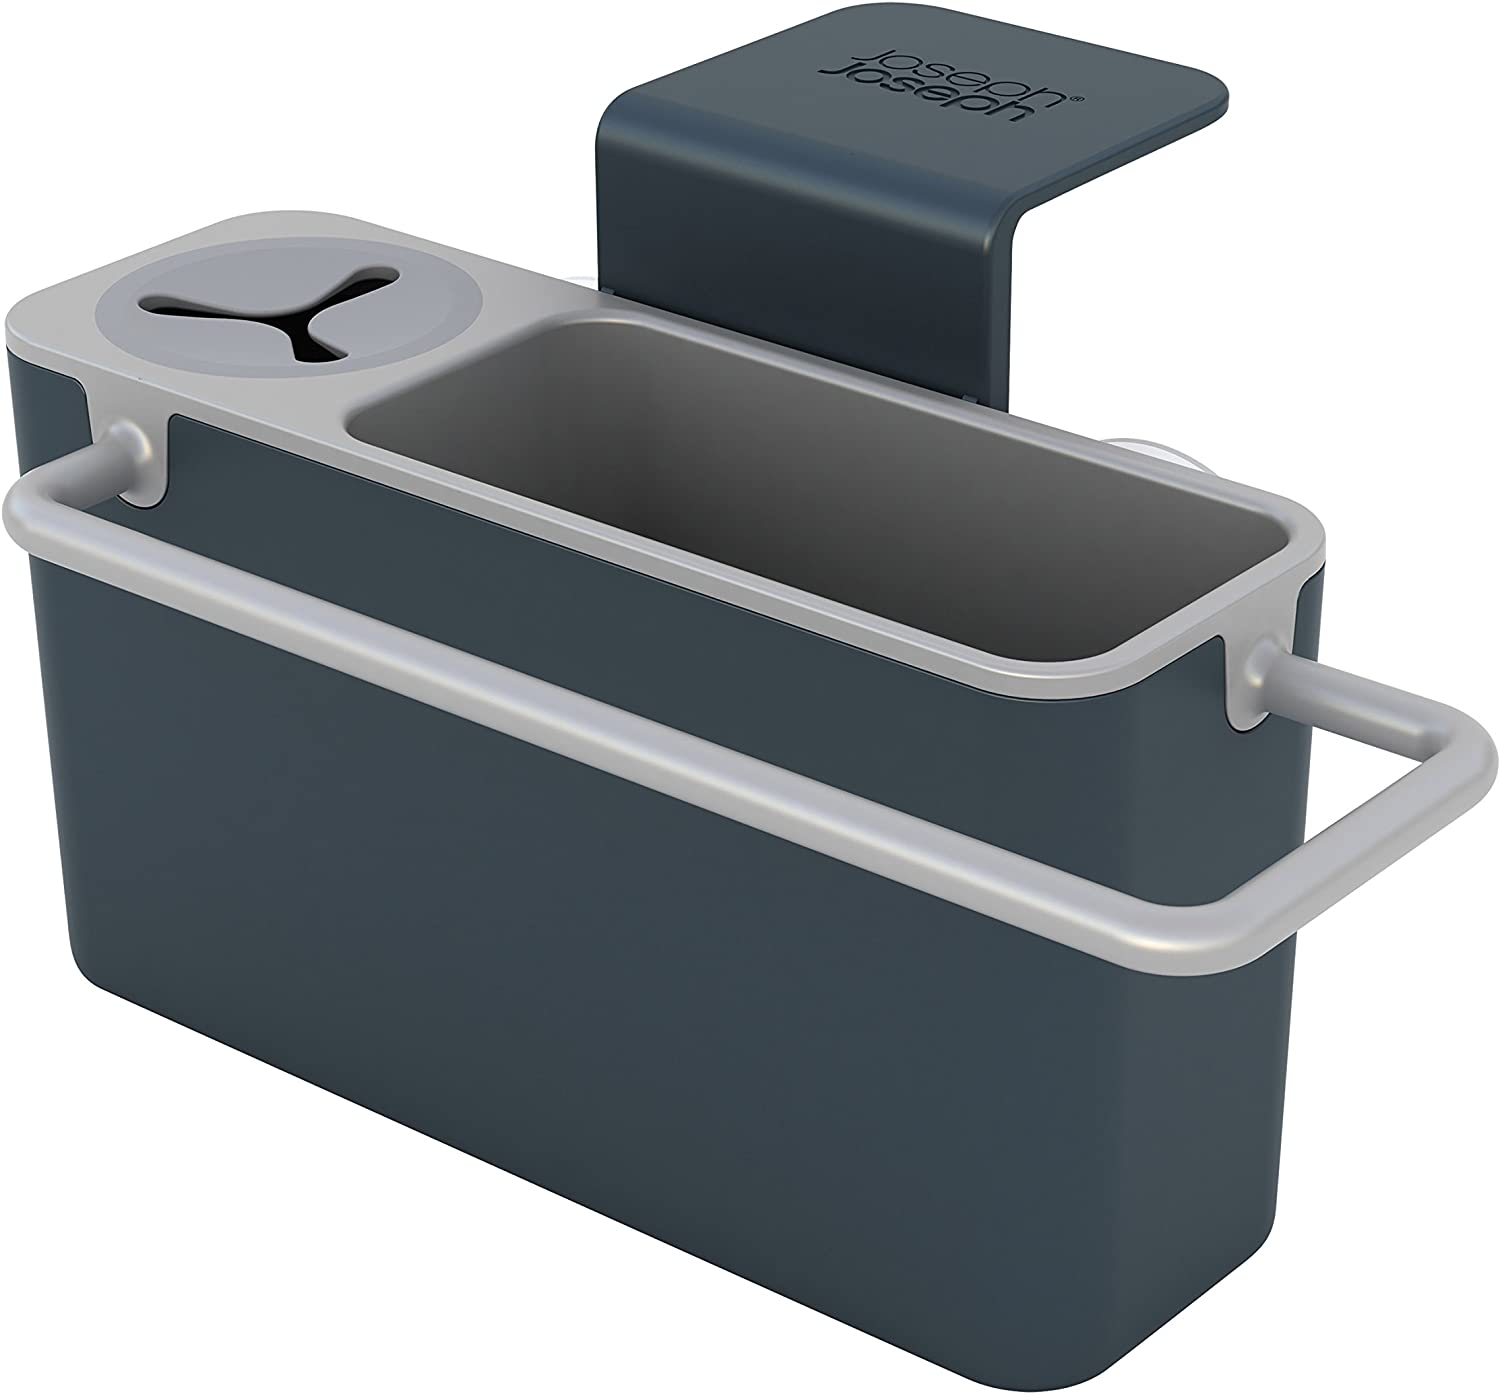 Joseph Special sale item 85024 Sink Aid Manufacturer OFFicial shop Caddy Self-Draining Gray